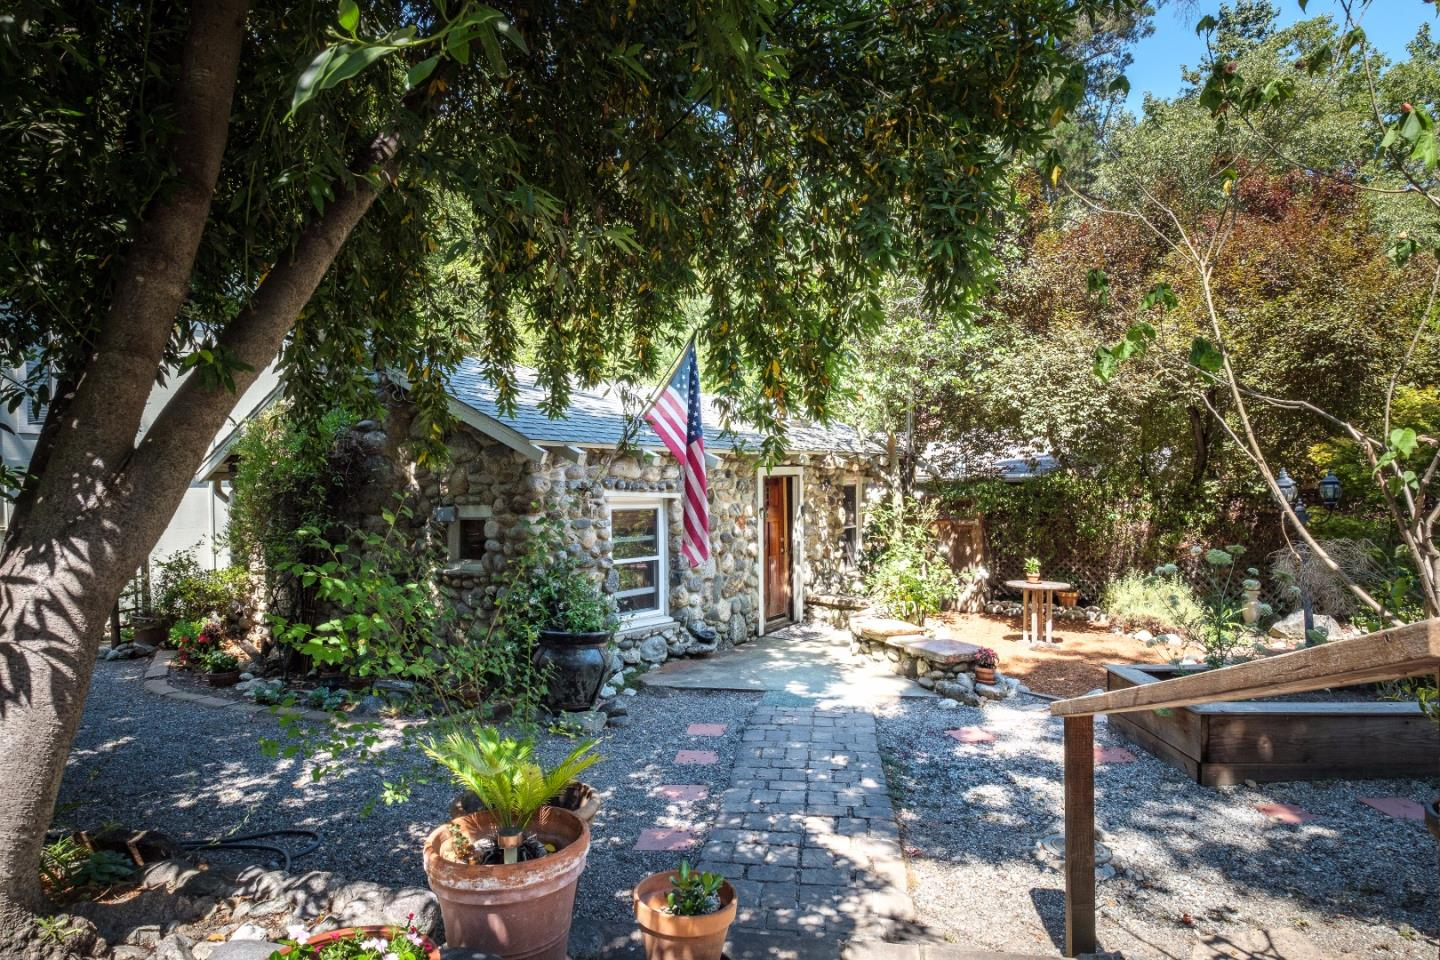 Casa Unifamiliar por un Venta en 19 Wawona Road Carmel Valley, California 93924 Estados Unidos